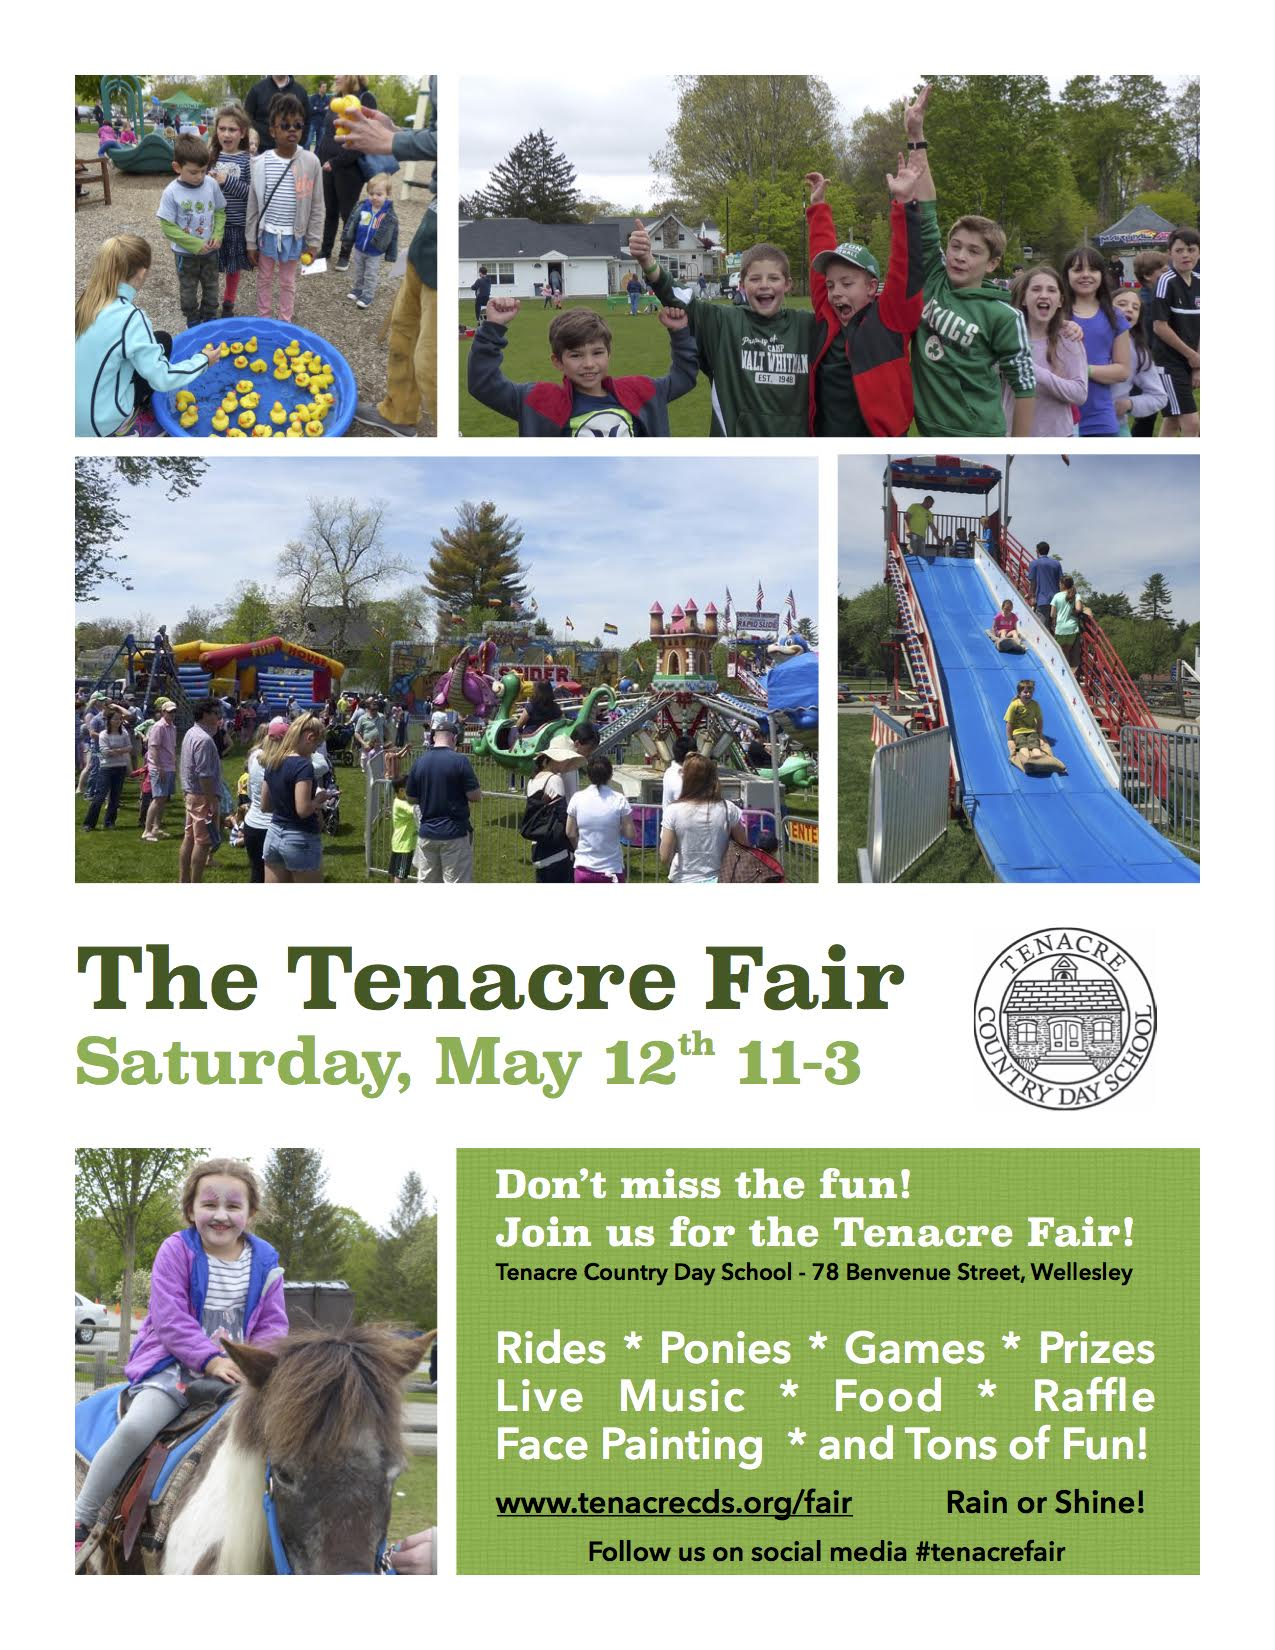 The Tenacre Fair, Wellesley